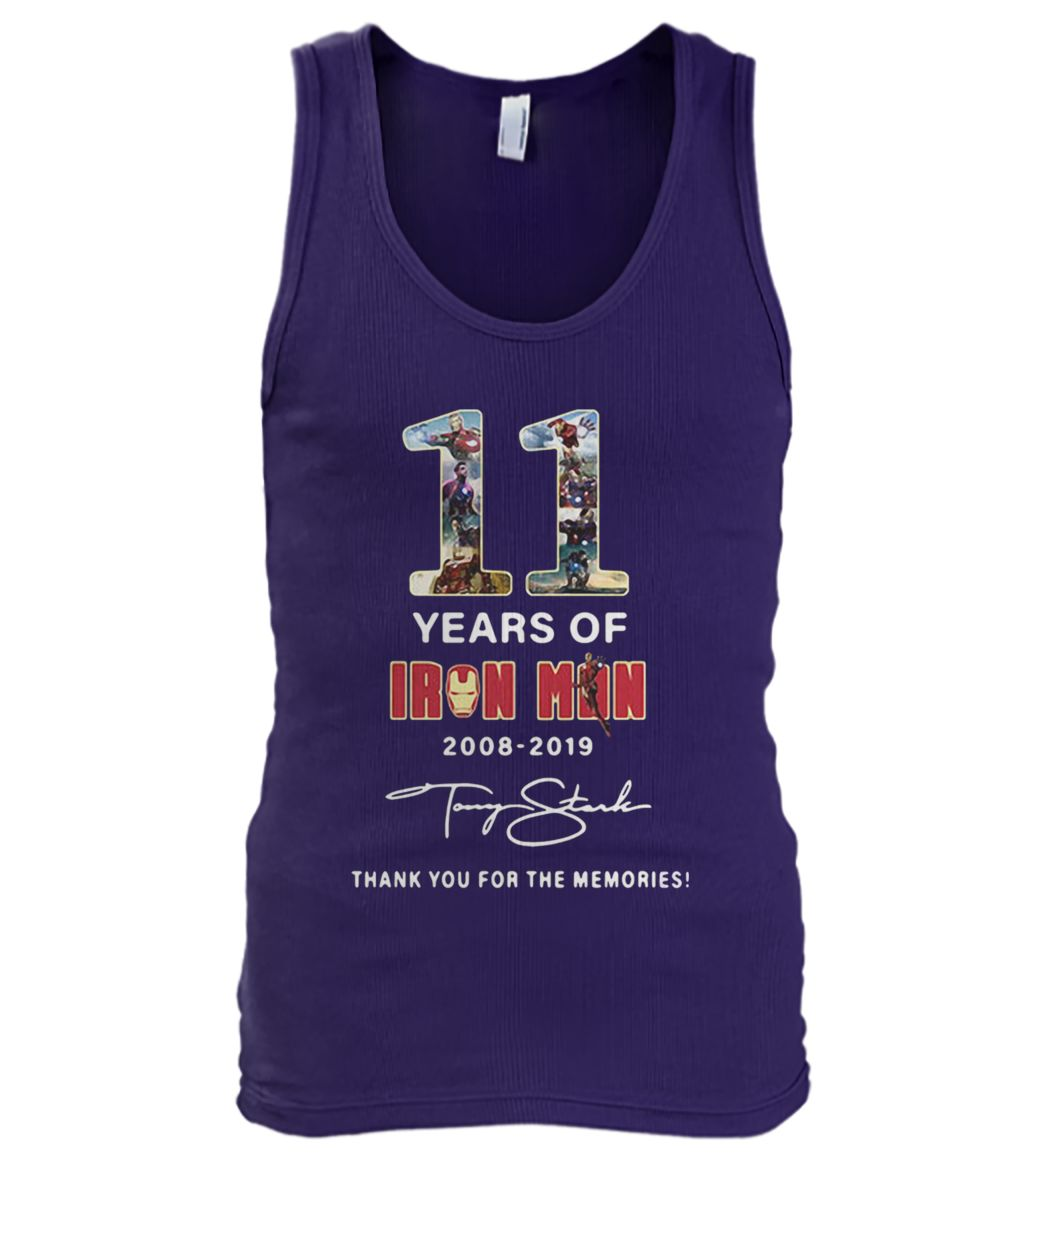 Marvel 11 years of Iron Man 2008 2019 thank you for the memories men's tank top